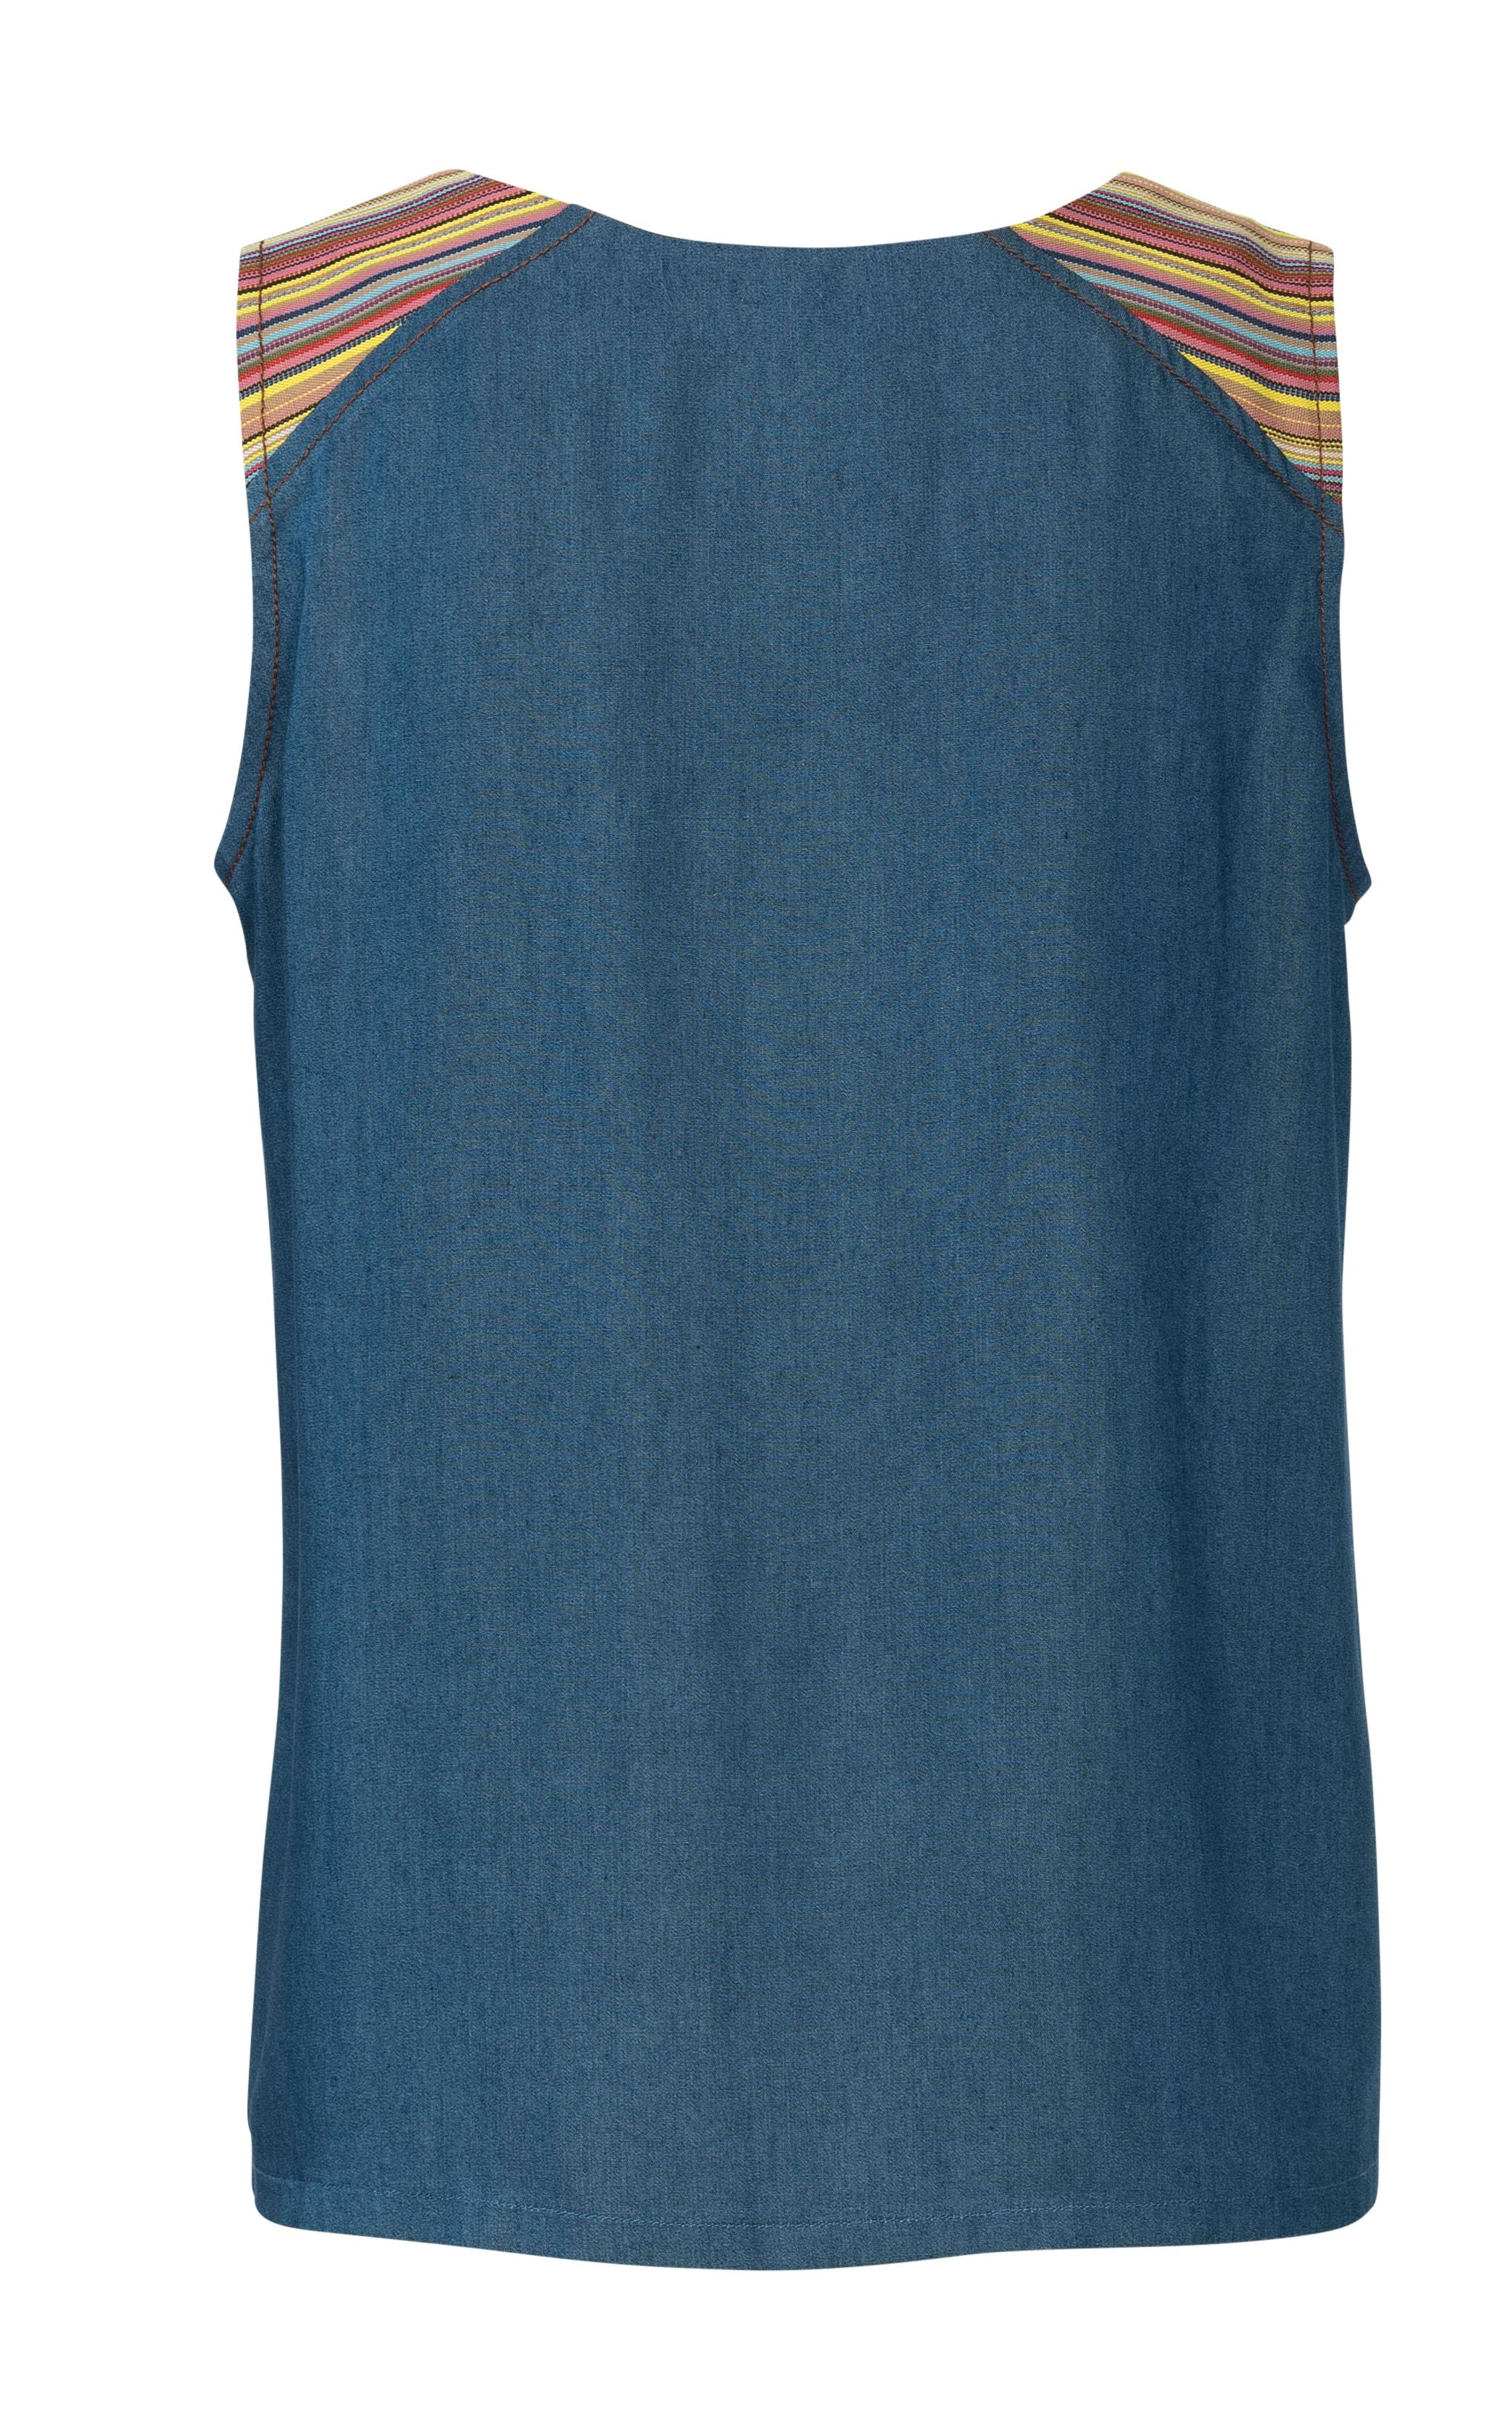 Burda B6201 Tank Top Sewing Pattern